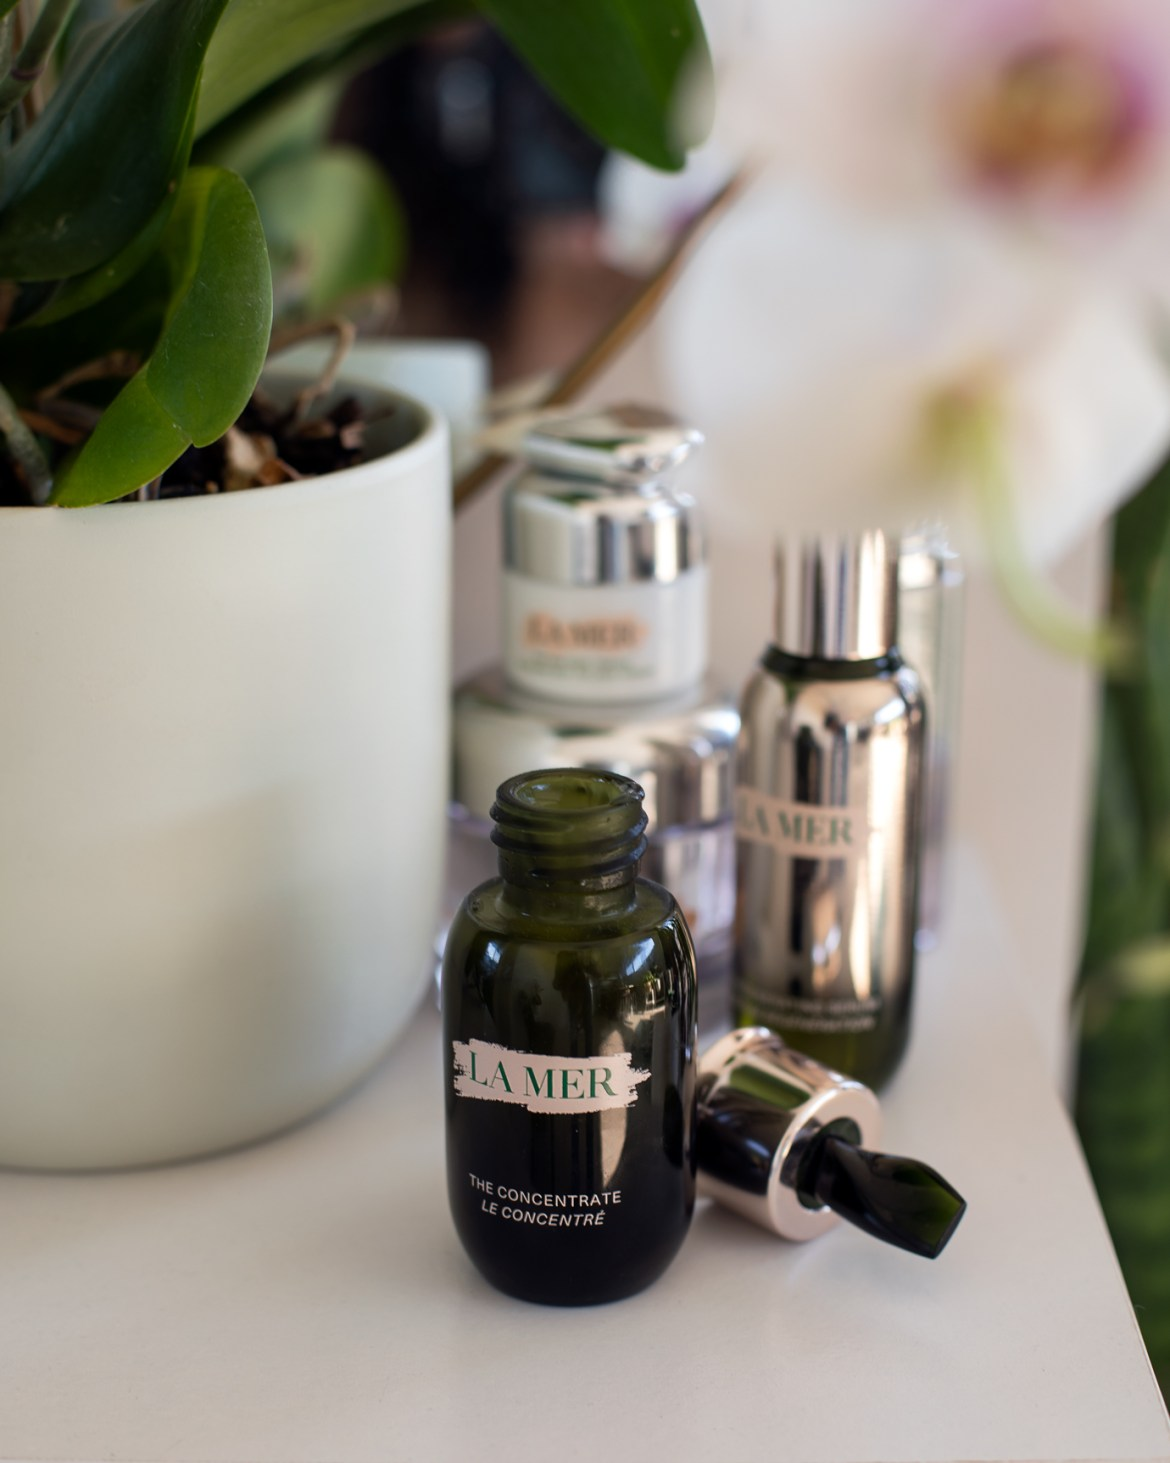 The Concentrate from La Mer bottle